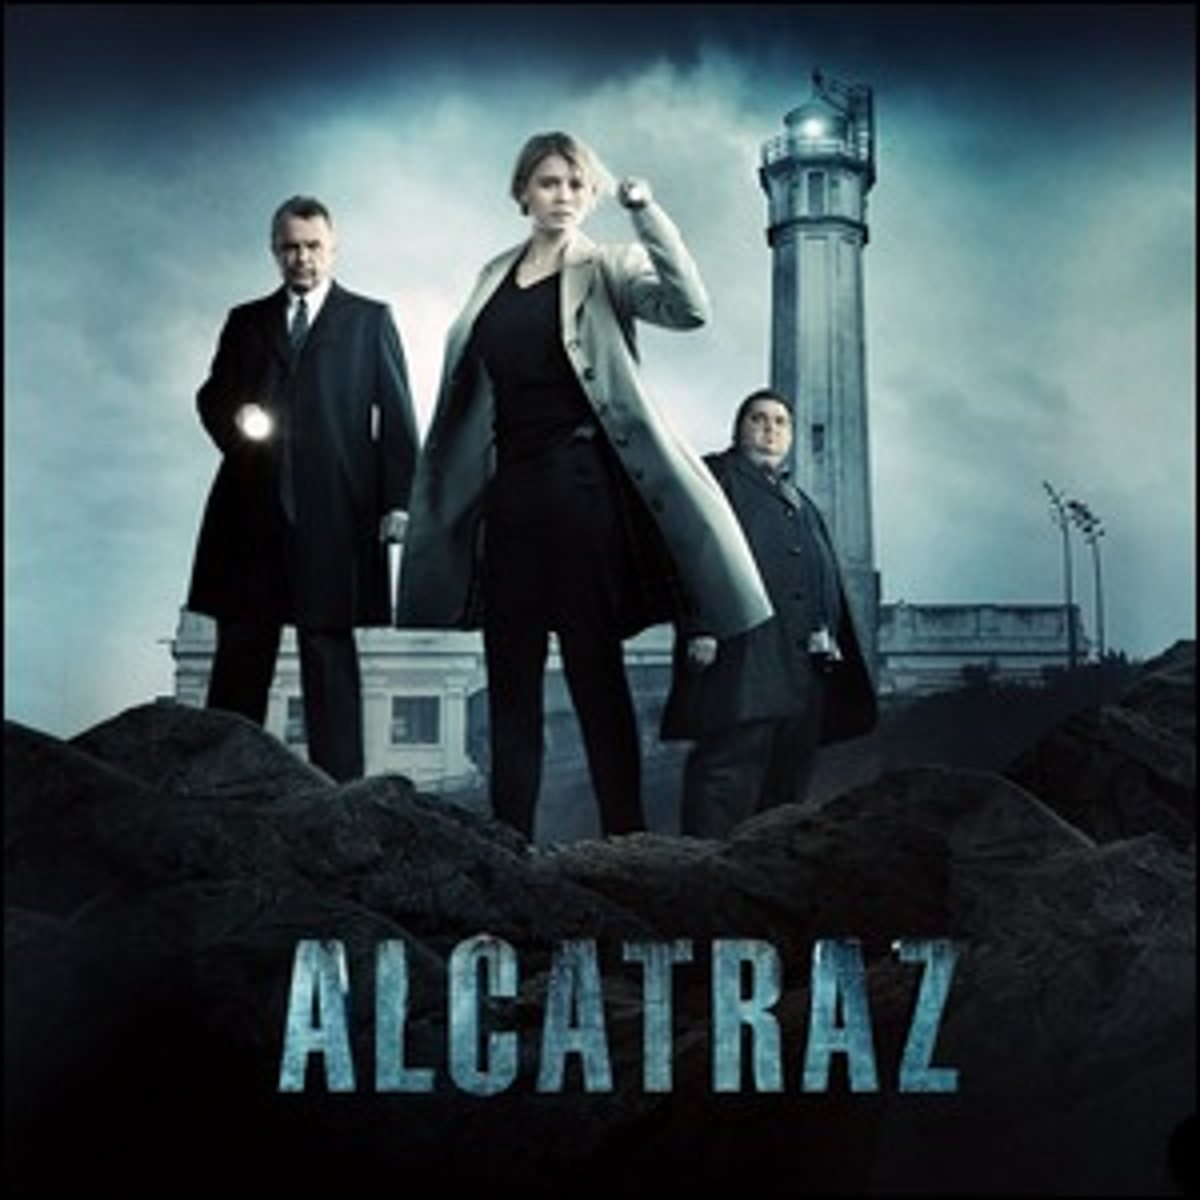 The cover art for the television series Alcatraz.